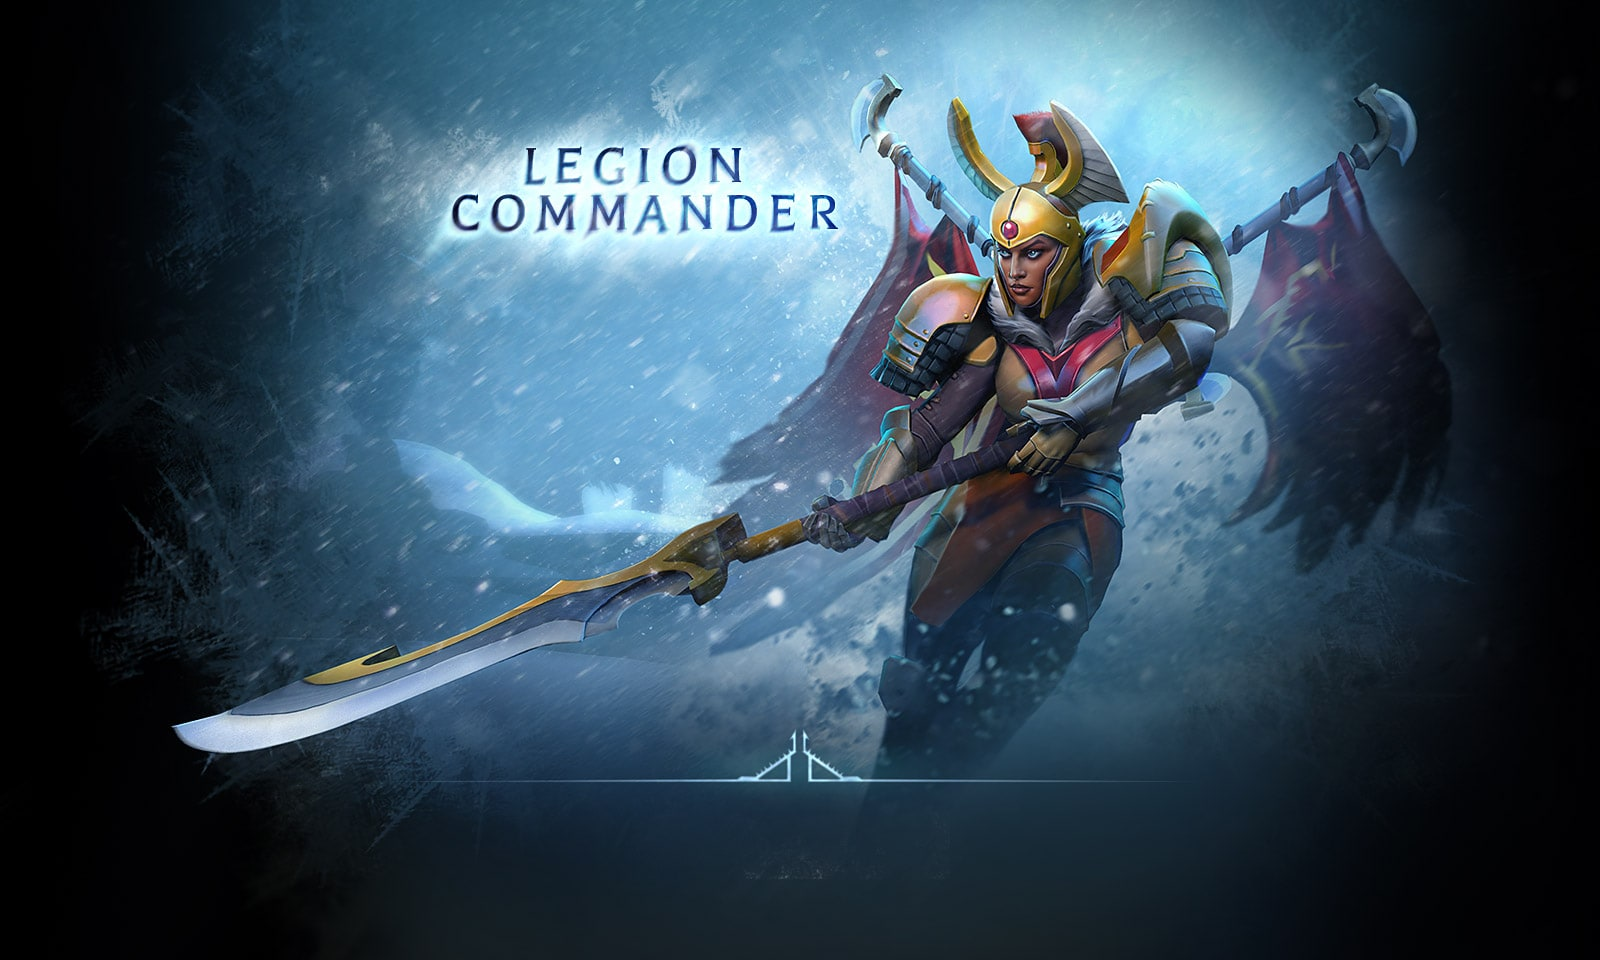 Dota2 : Legion Commander full hd wallpapers